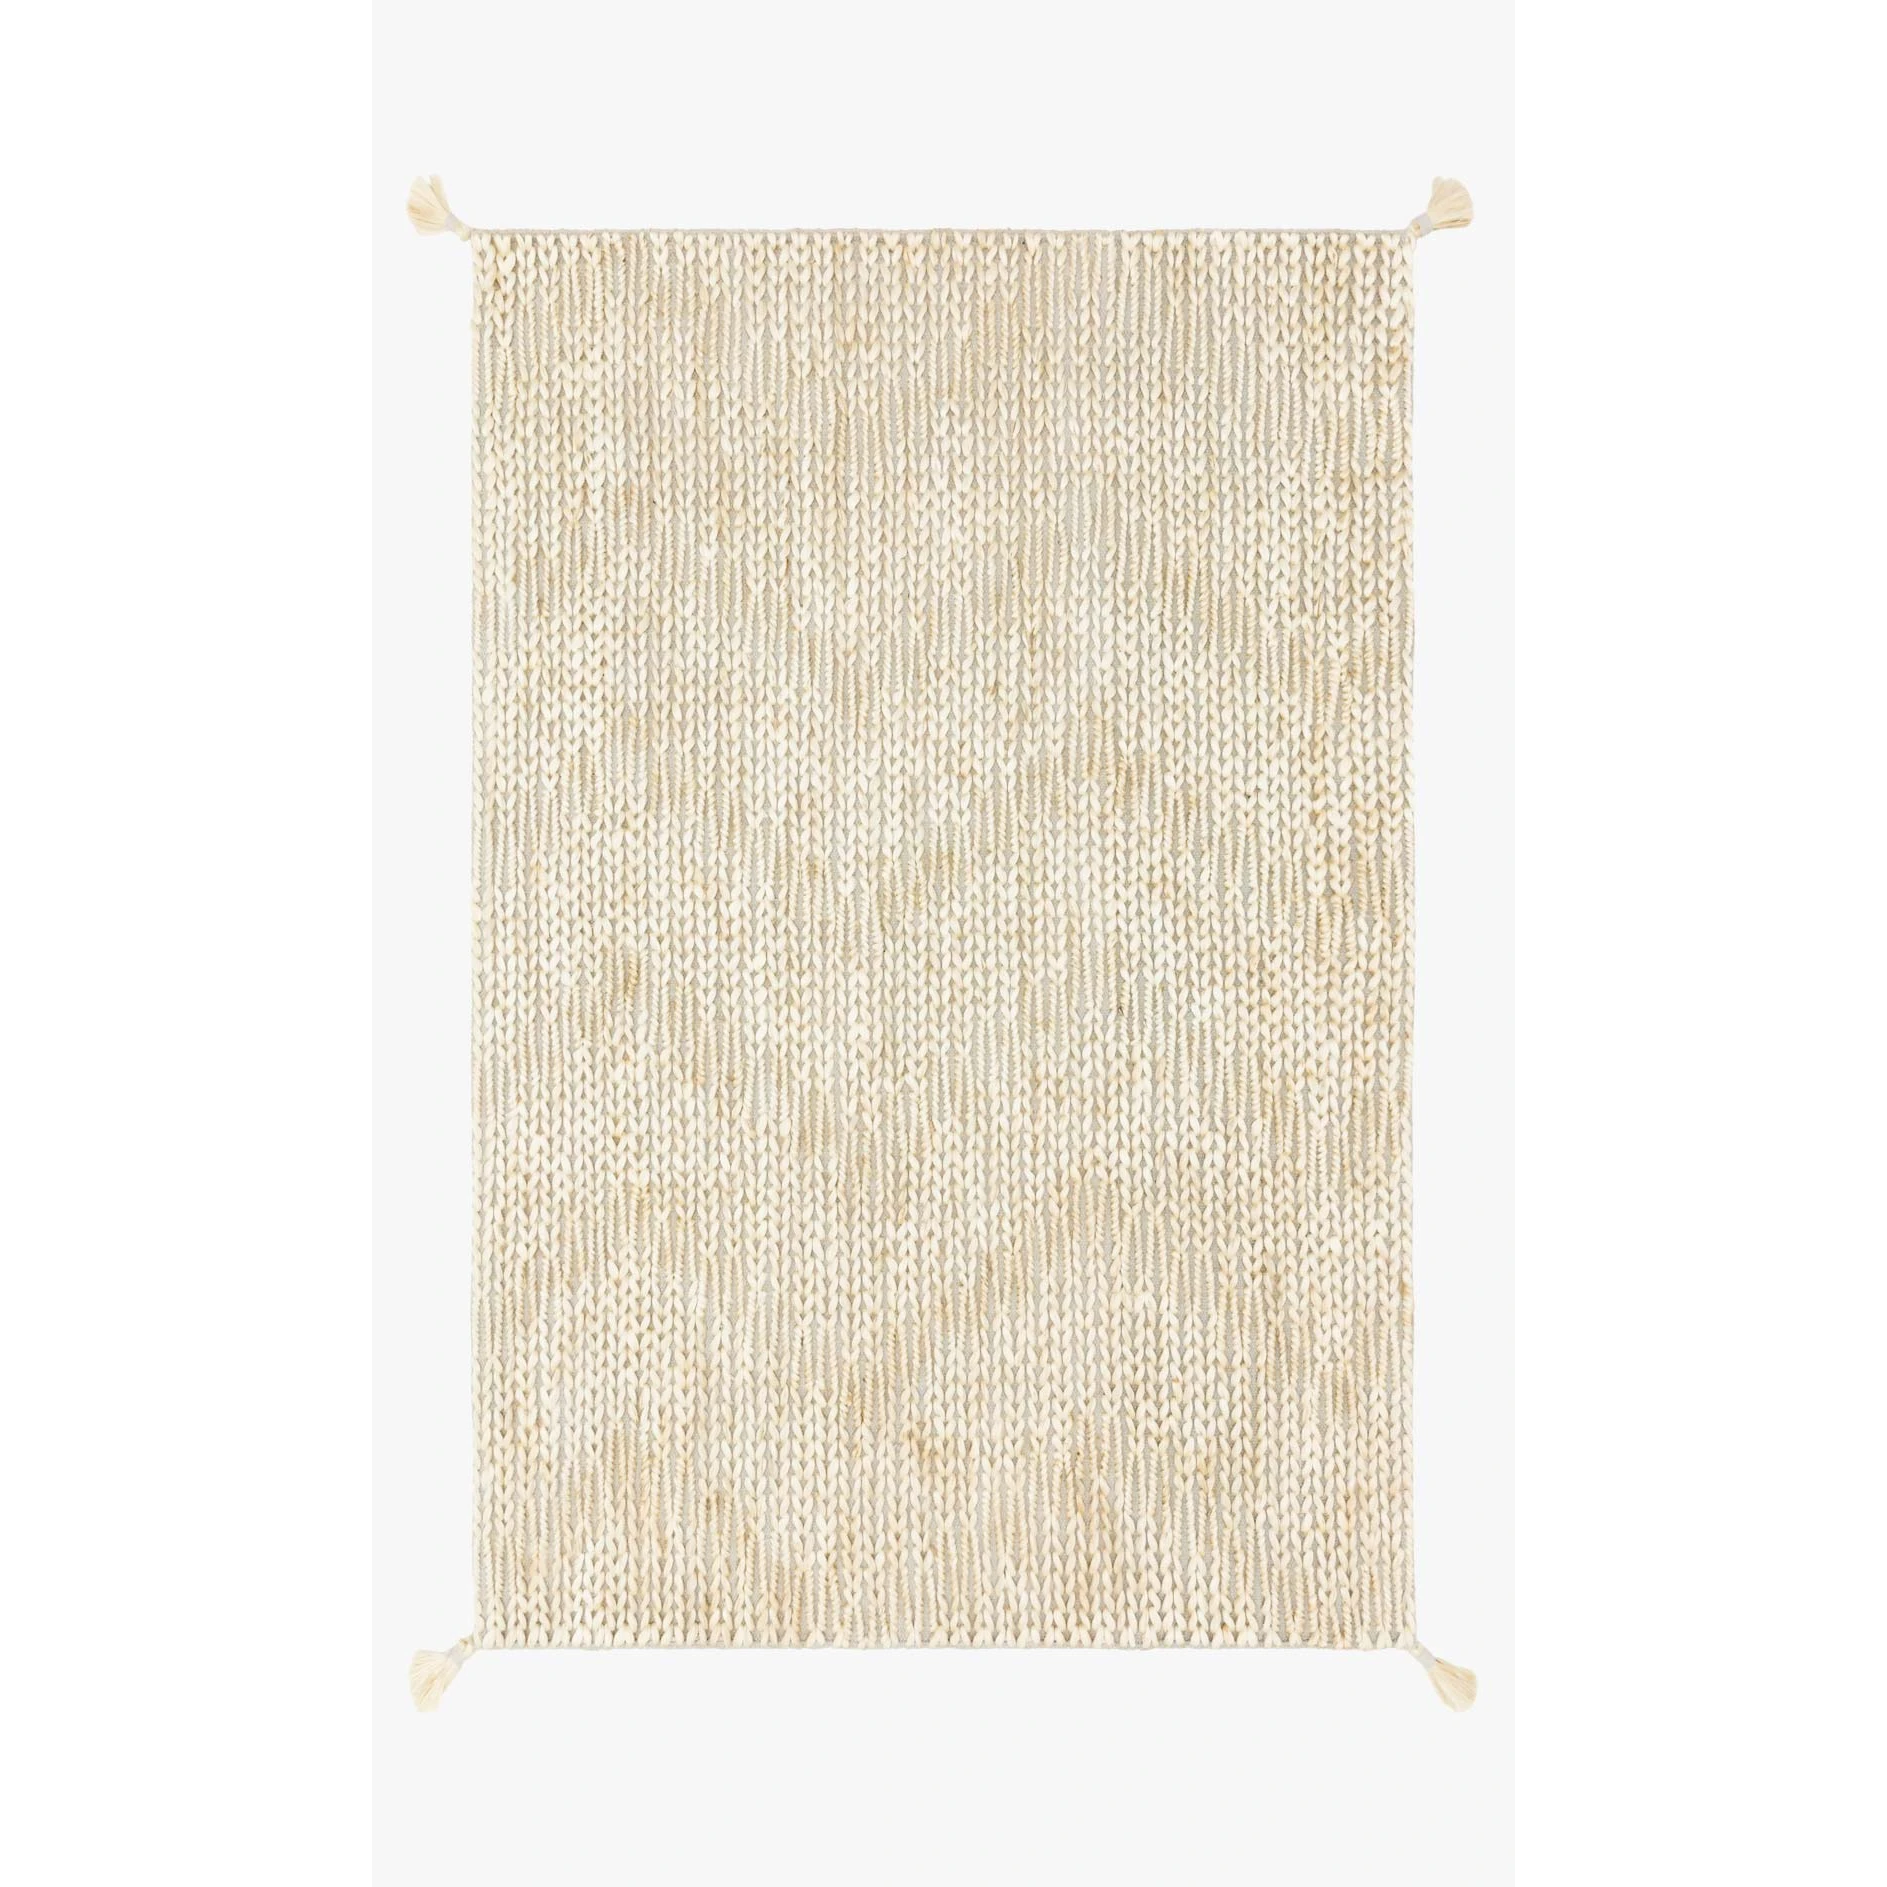 Justina Blakeney Playa Rug Collection - Ply-01 Grey/Ivory-Loloi Rugs-Blue Hand Home